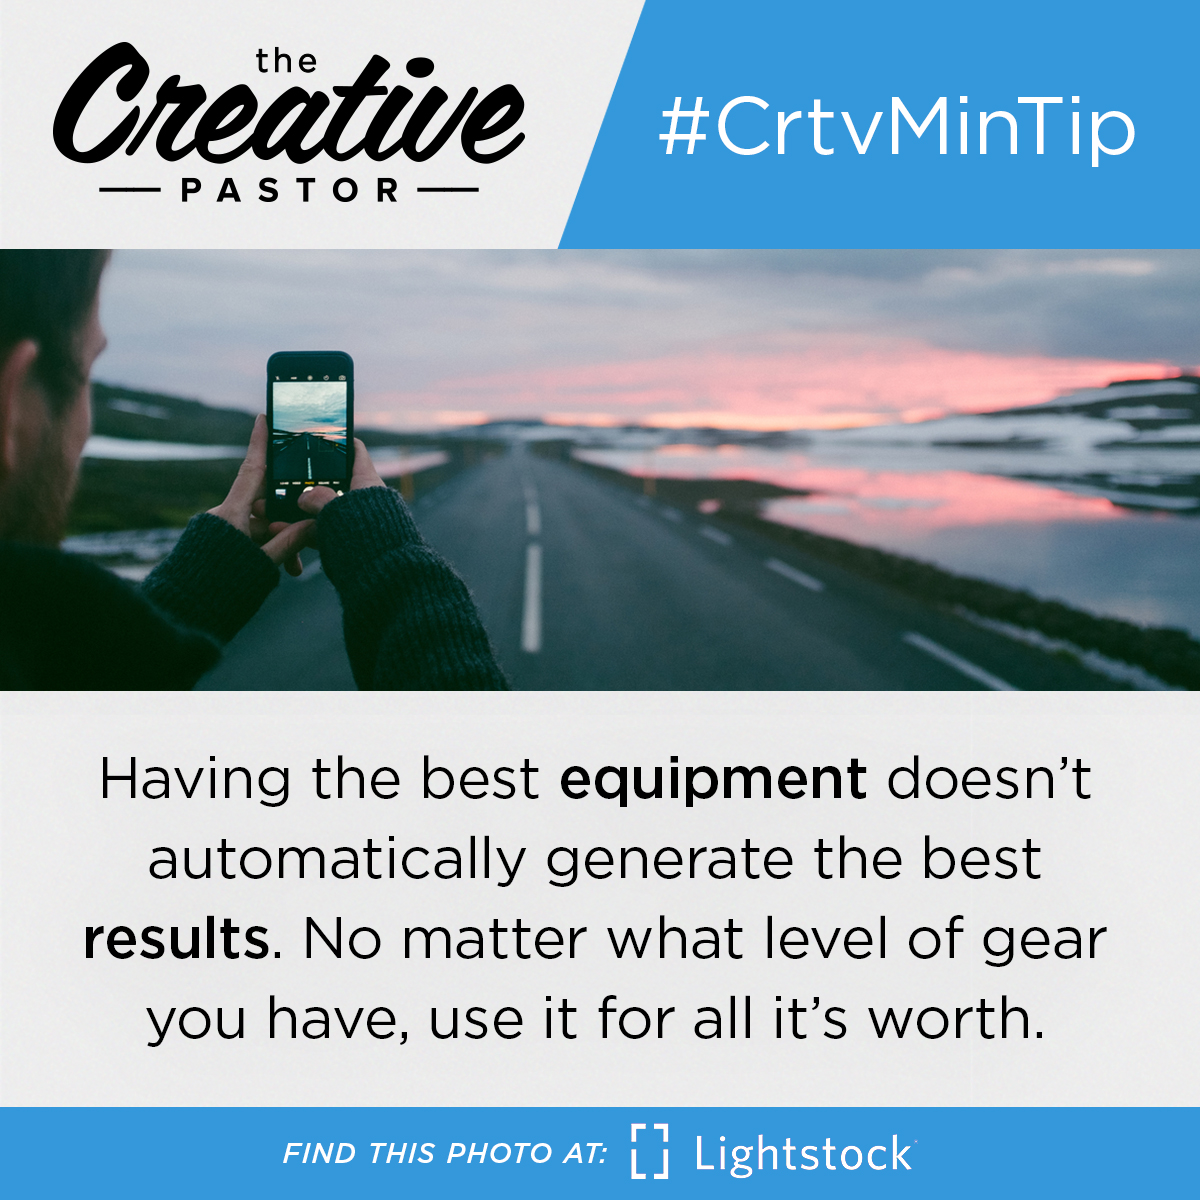 #CrtvMinTip: Having the best equipment doesn't automatically generate the best results. No matter what level of gear you have, use it for all it's worth.